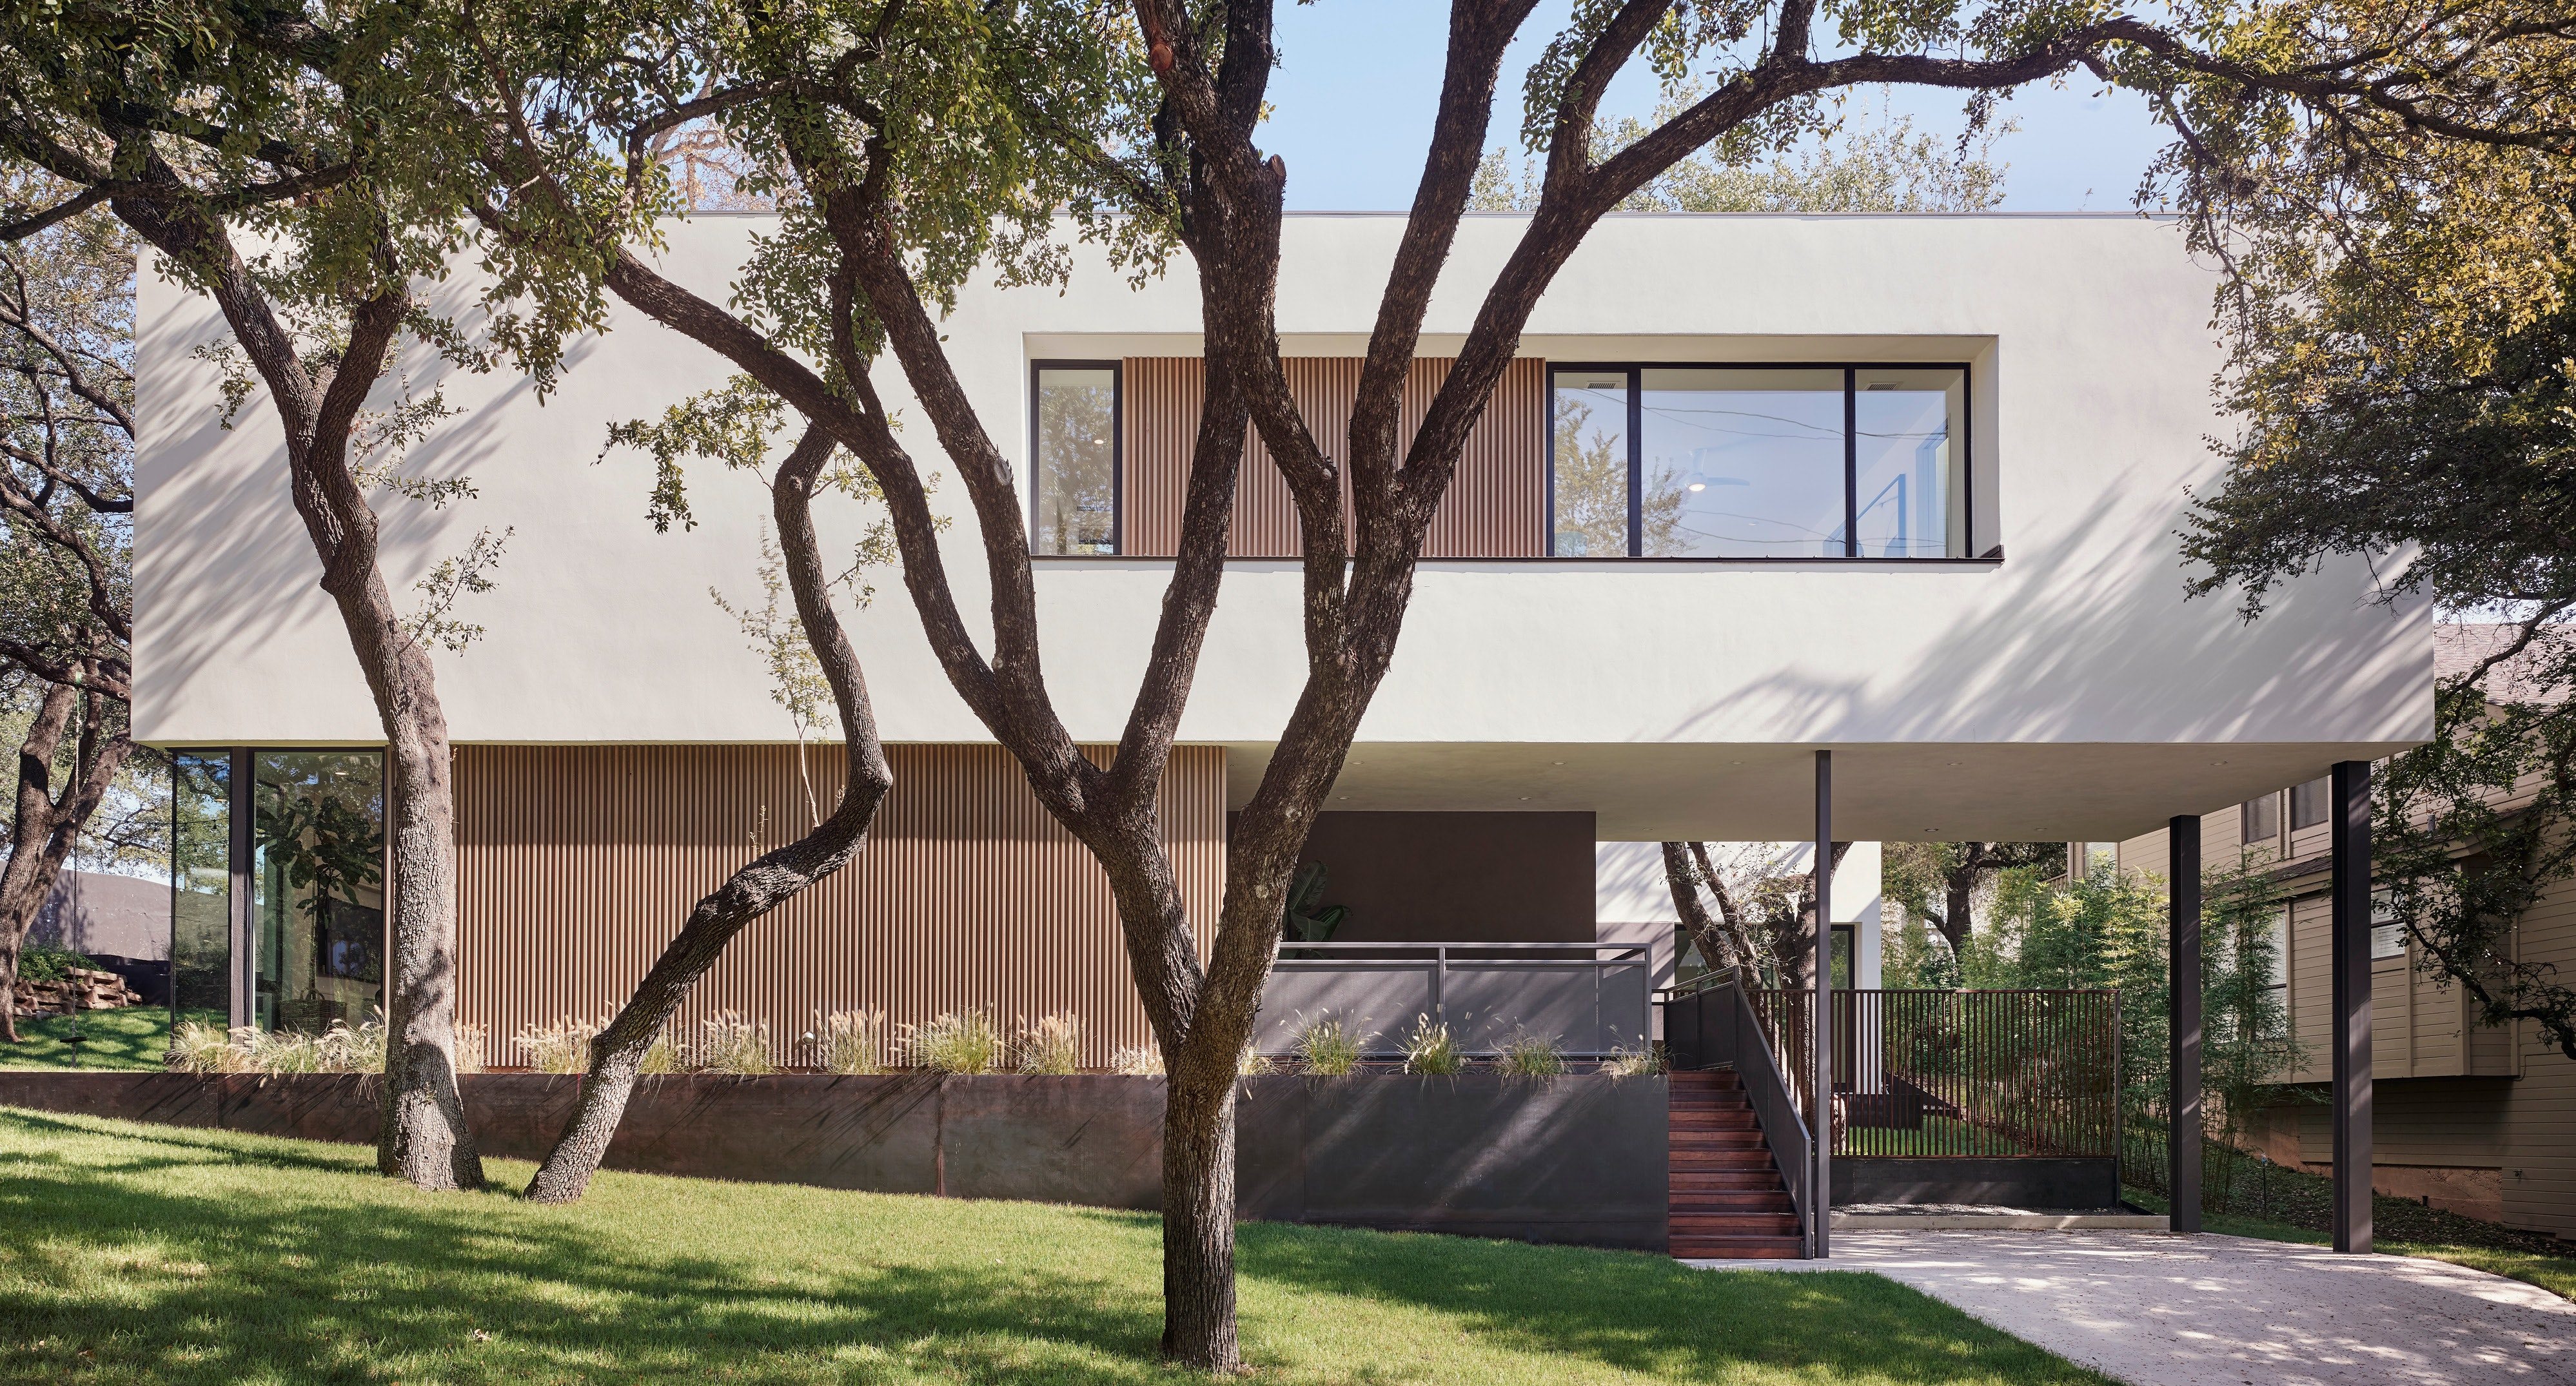 New contemporary with large horizontal white stucco second floor, smaller first story in glass and wood slatted screen